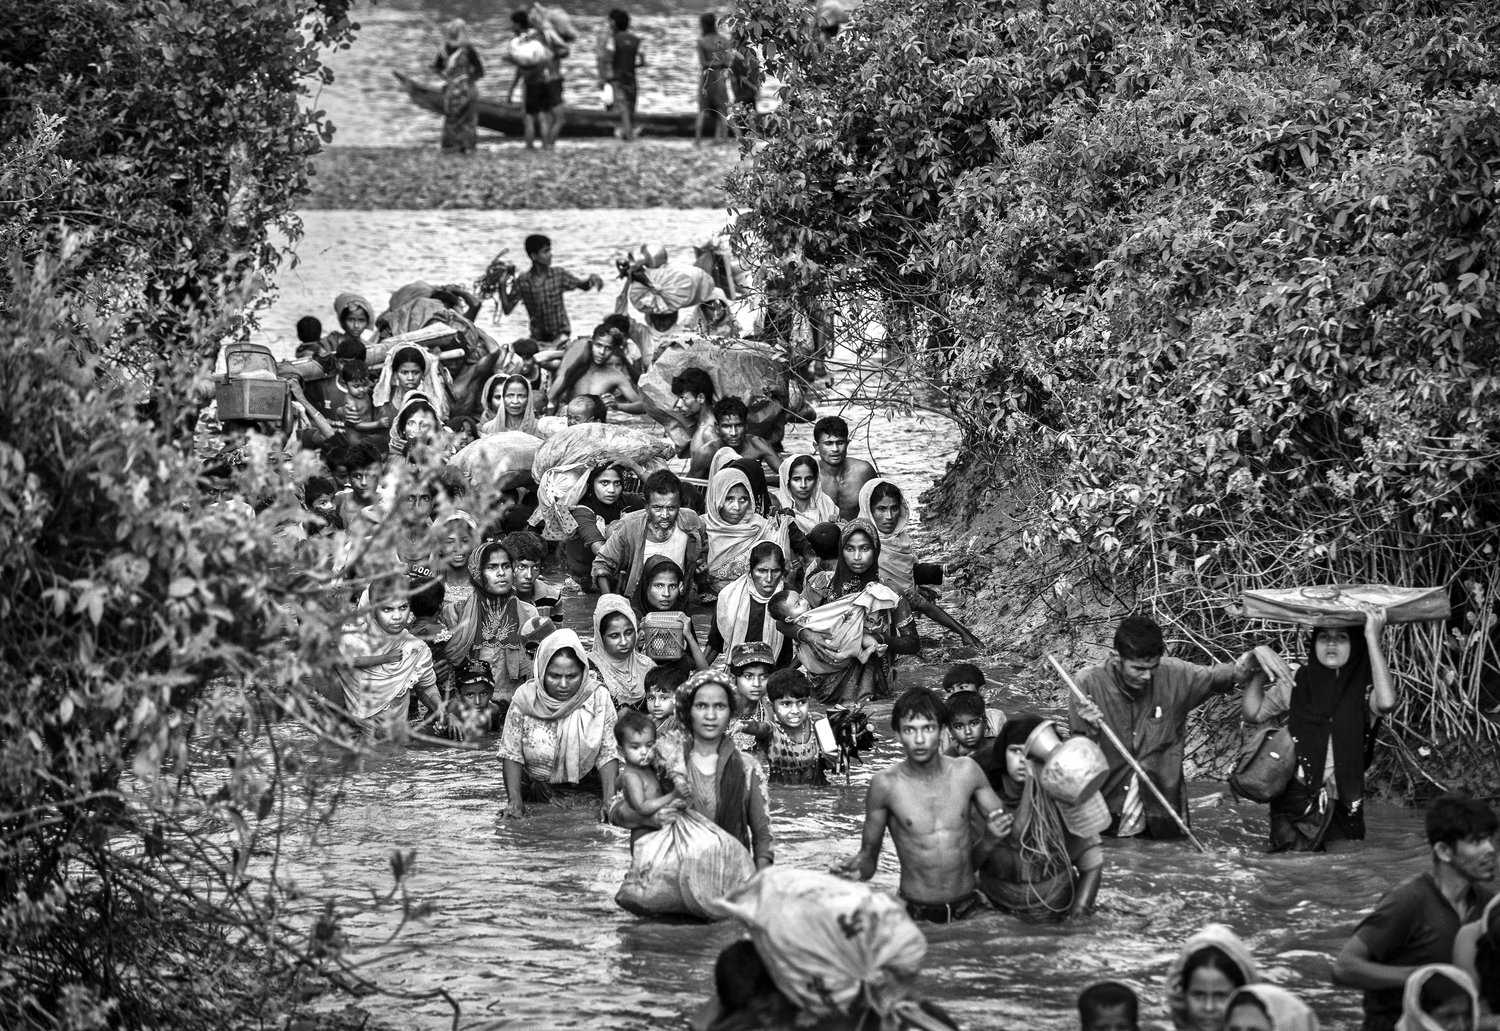 Rohingya Muslim refu-gees crowd a canal as they flee over the border from Myanmar into Bangladesh on Nov. 1, 2017]